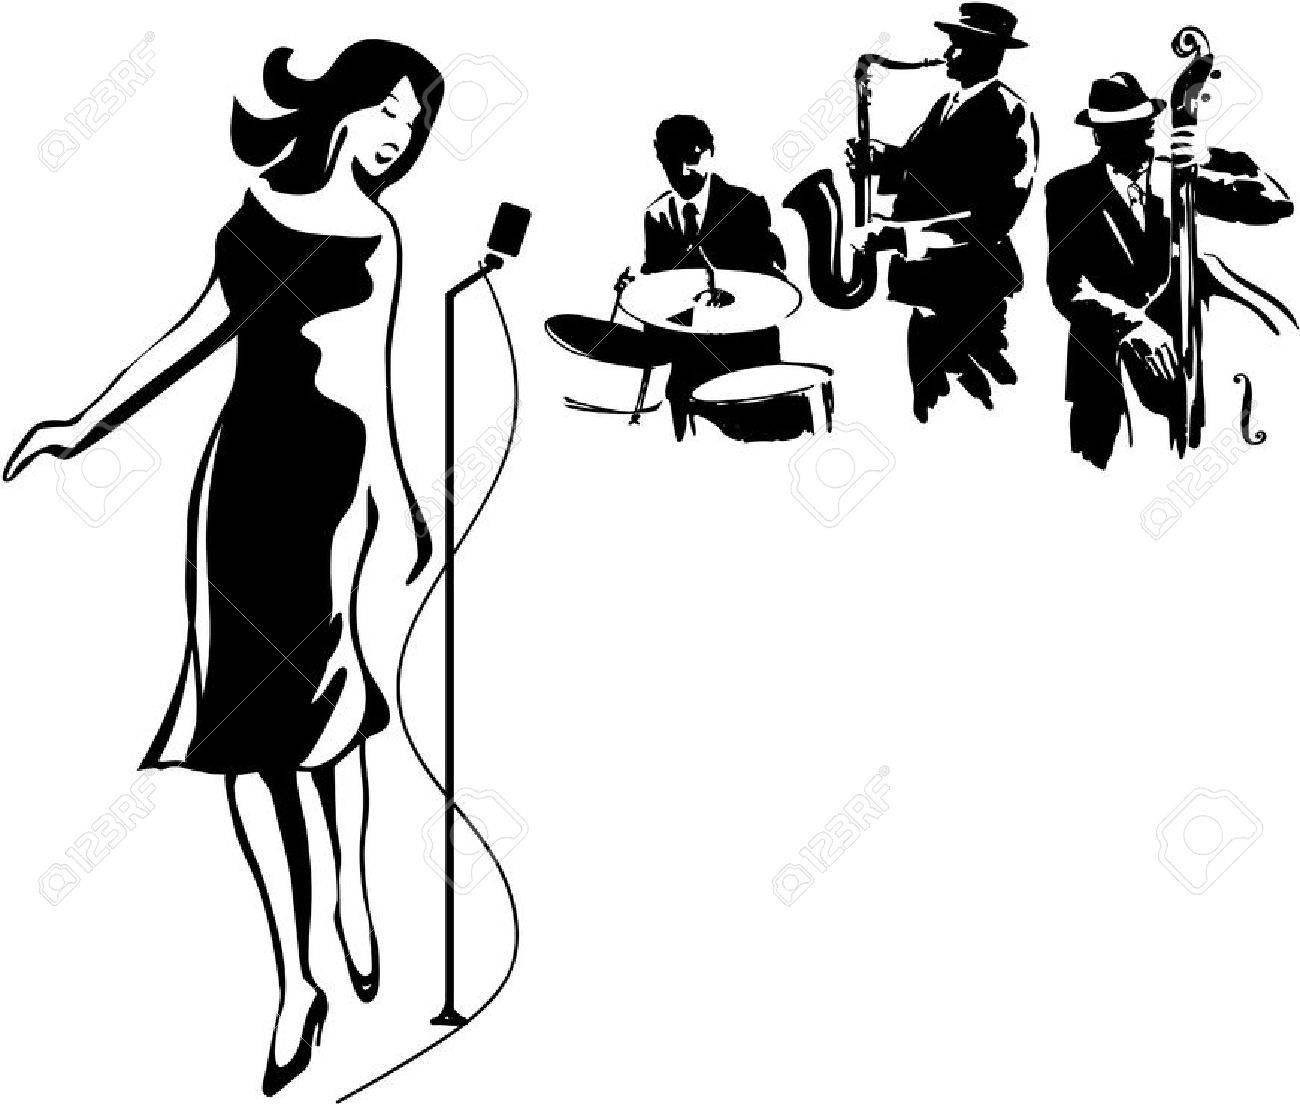 3 525 jazz singer stock vector illustration and royalty free jazz rh 123rf com jazz music clipart jazz band clipart